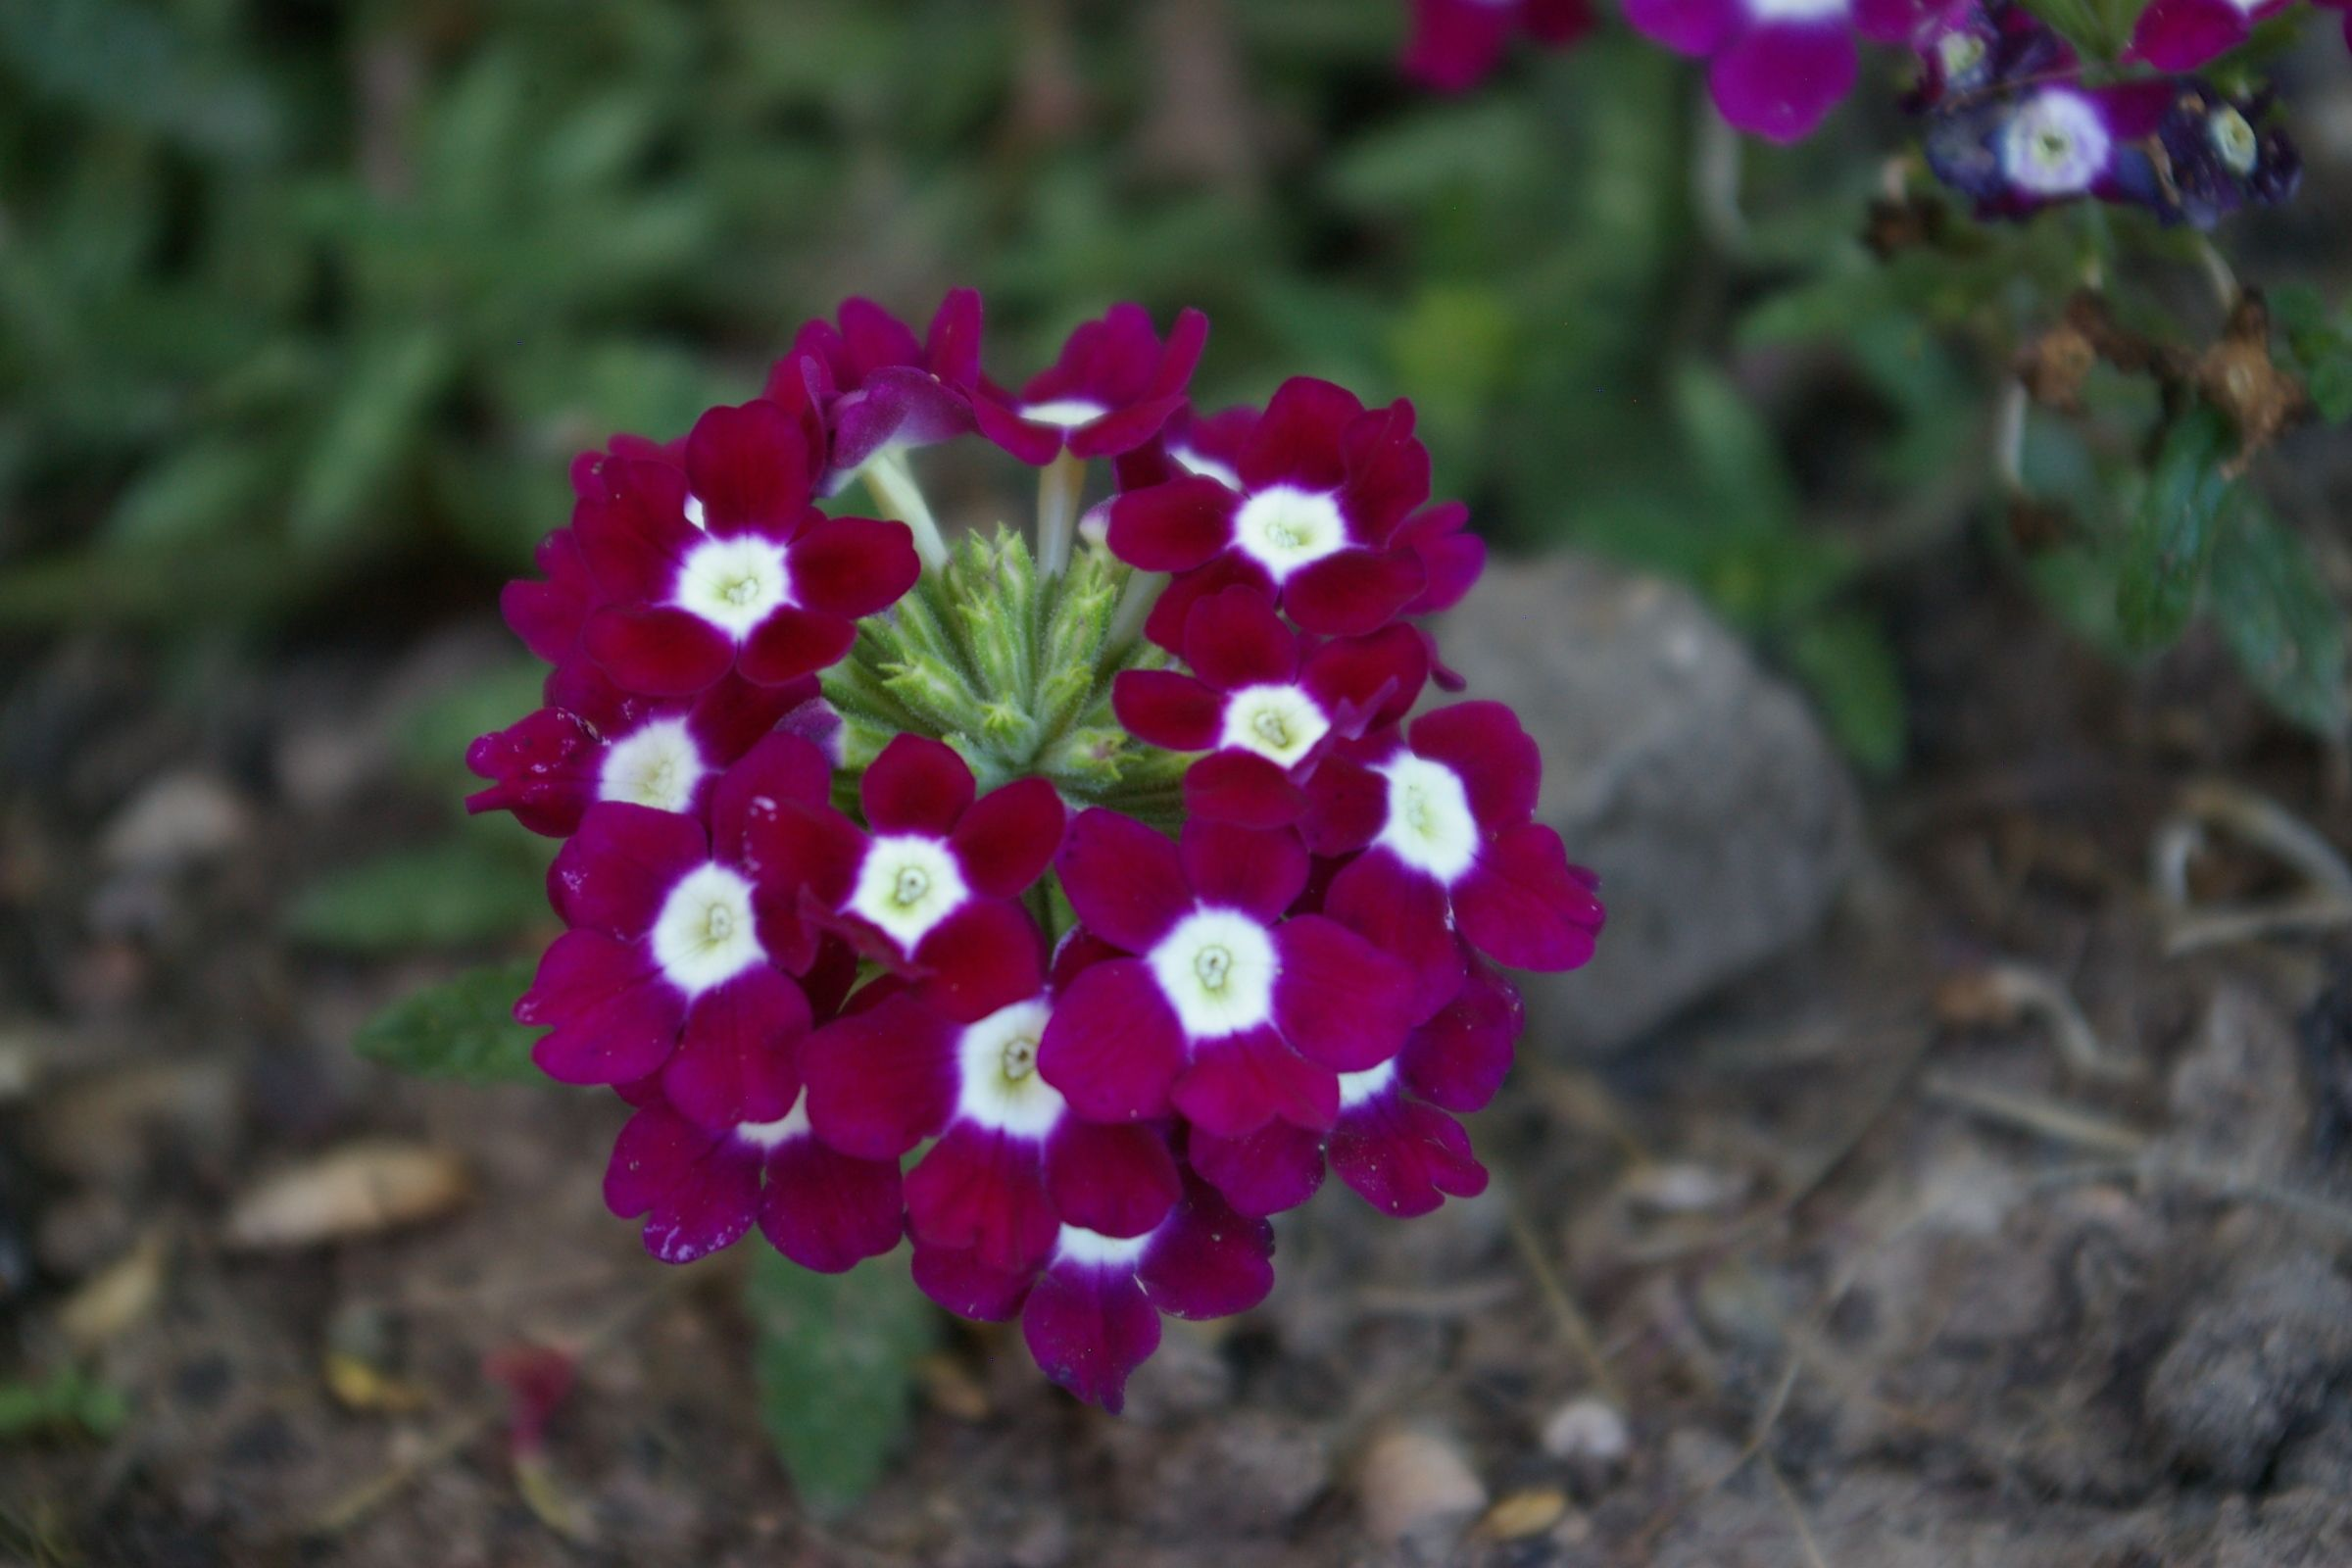 A Flower With Small Purple Flowers With White In The Middle